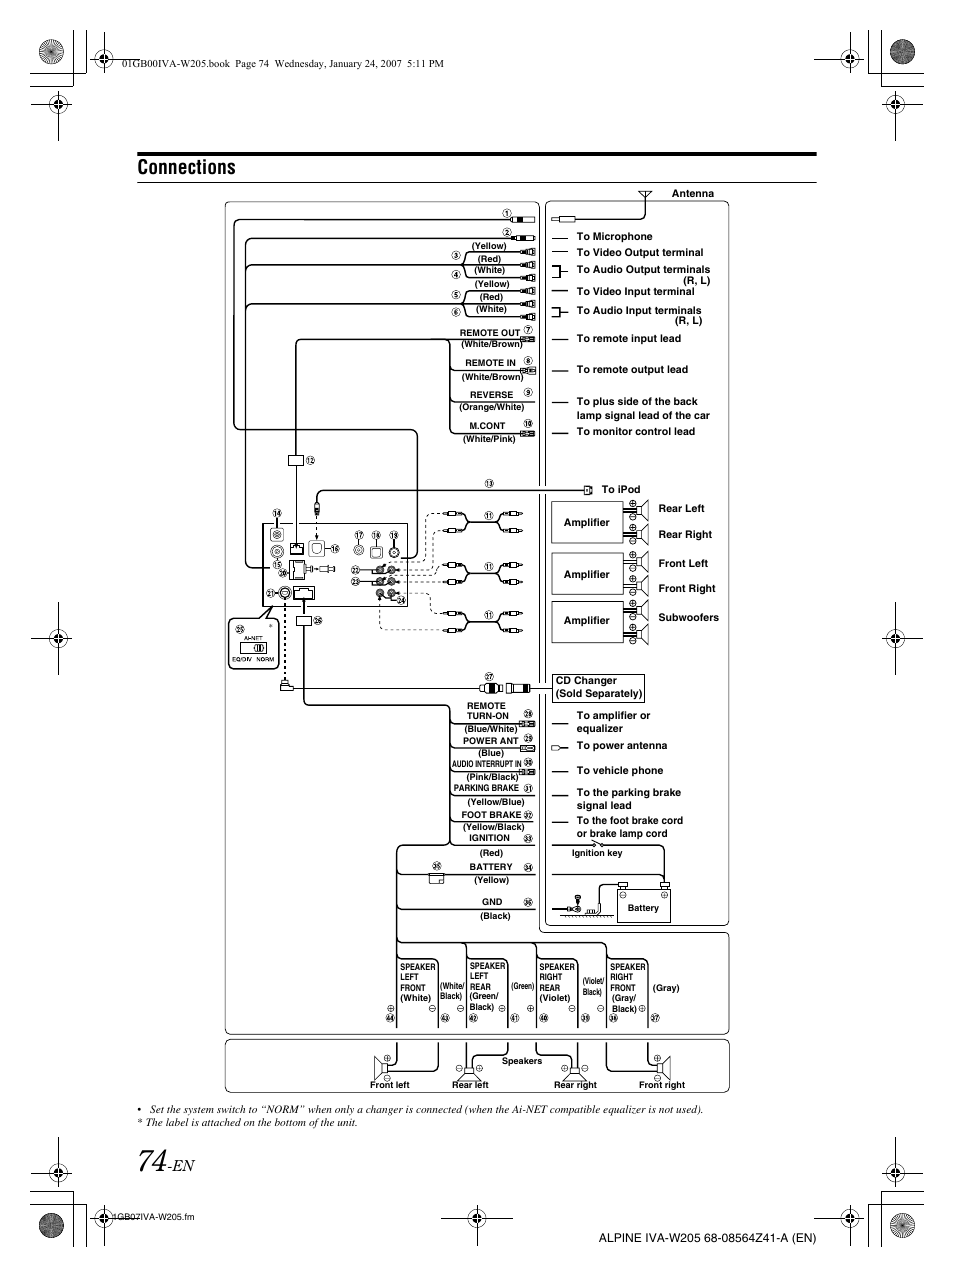 ALPINE IVA-W205 MANUAL PDF